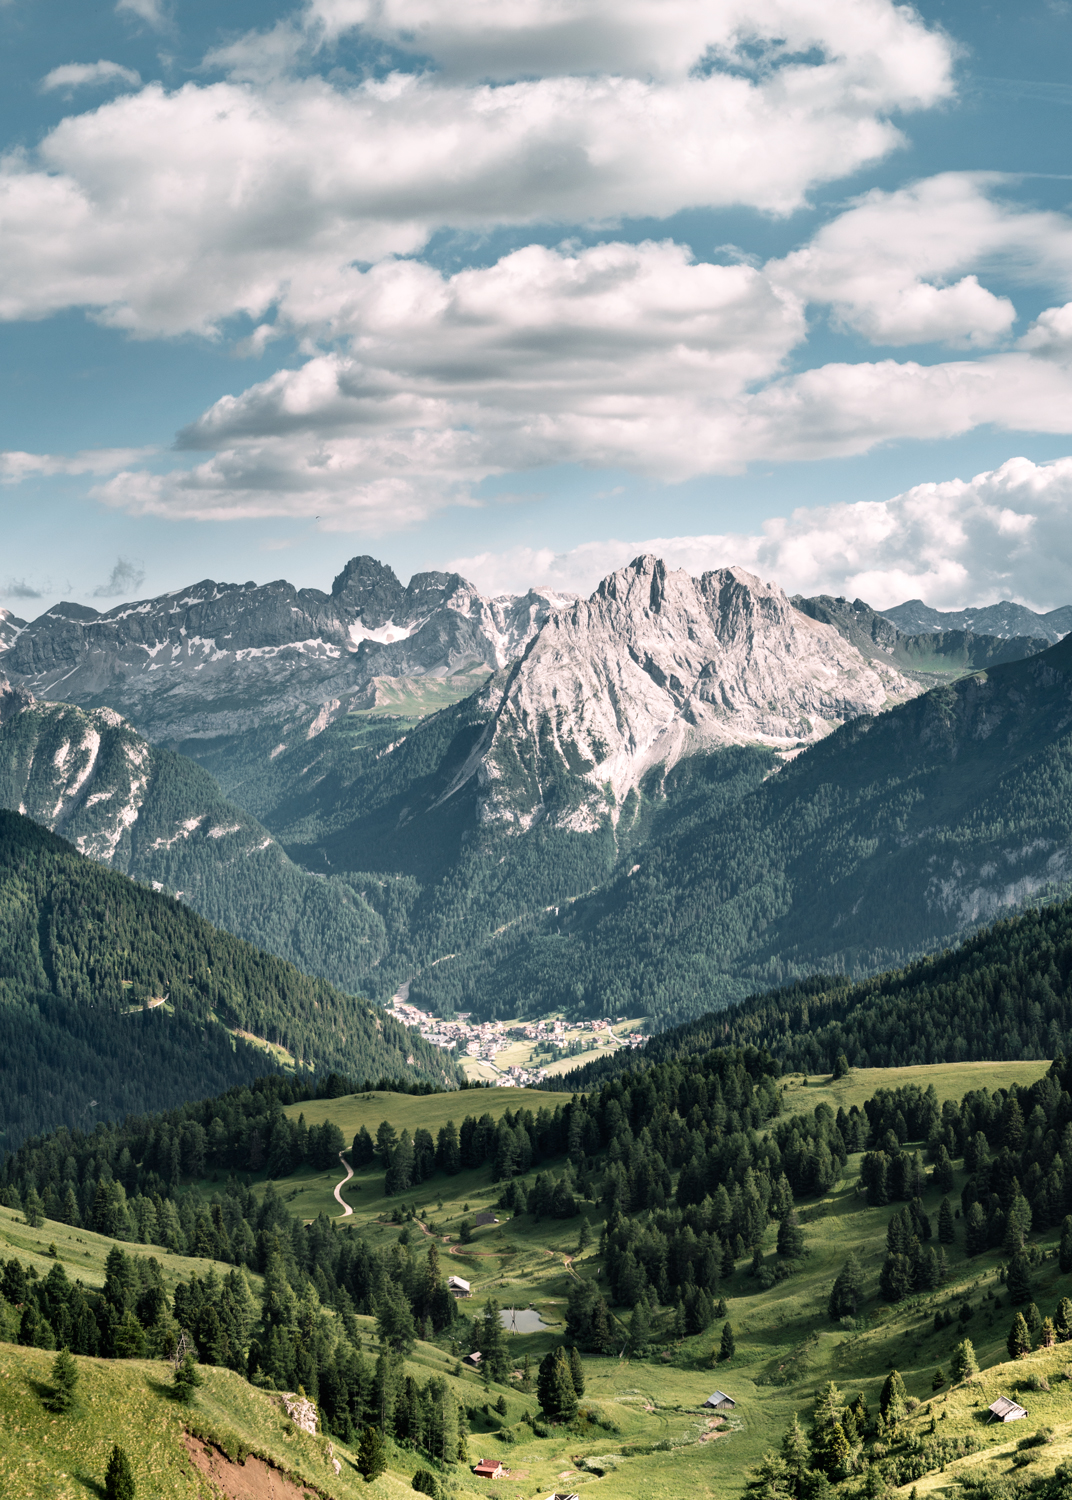 Dolomites mountain and valley landscape - kirsty owen photography